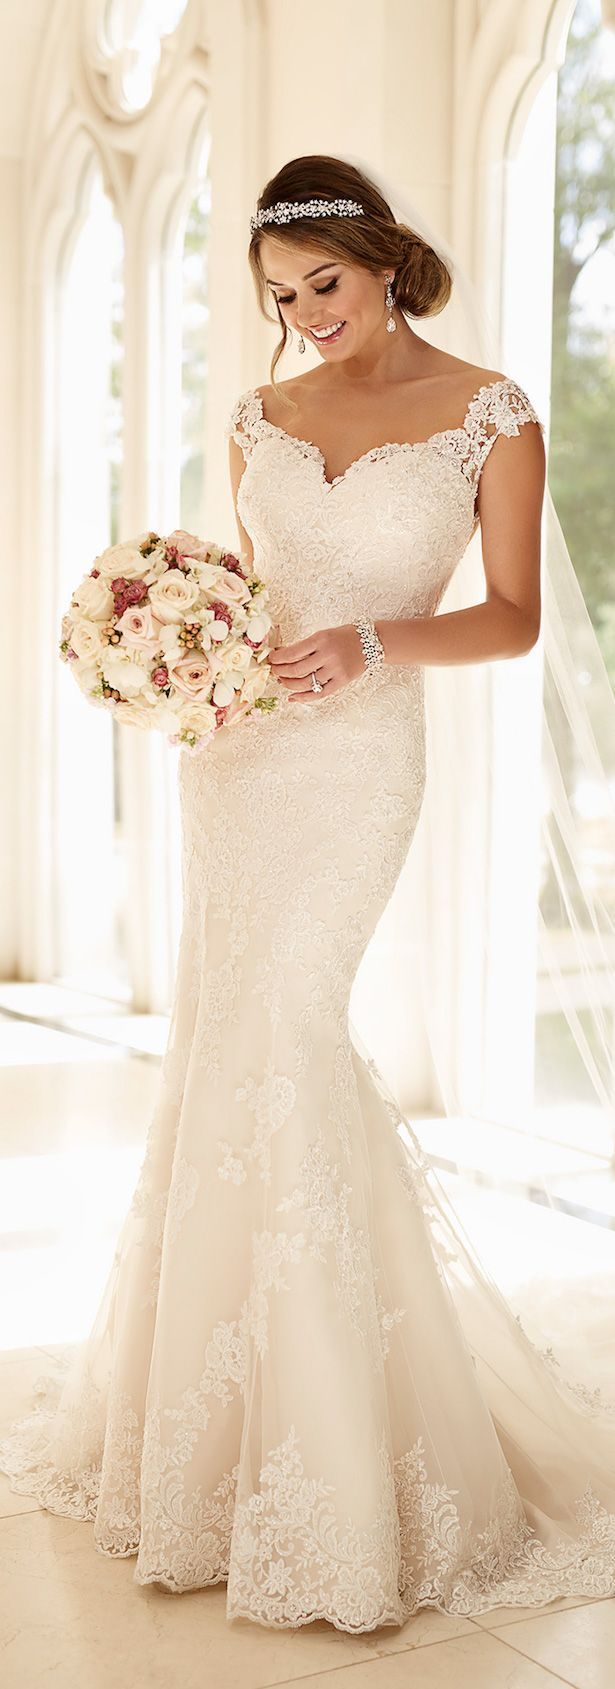 off shoulder wedding dress wedding dresses Stella York Spring Bridal Collection